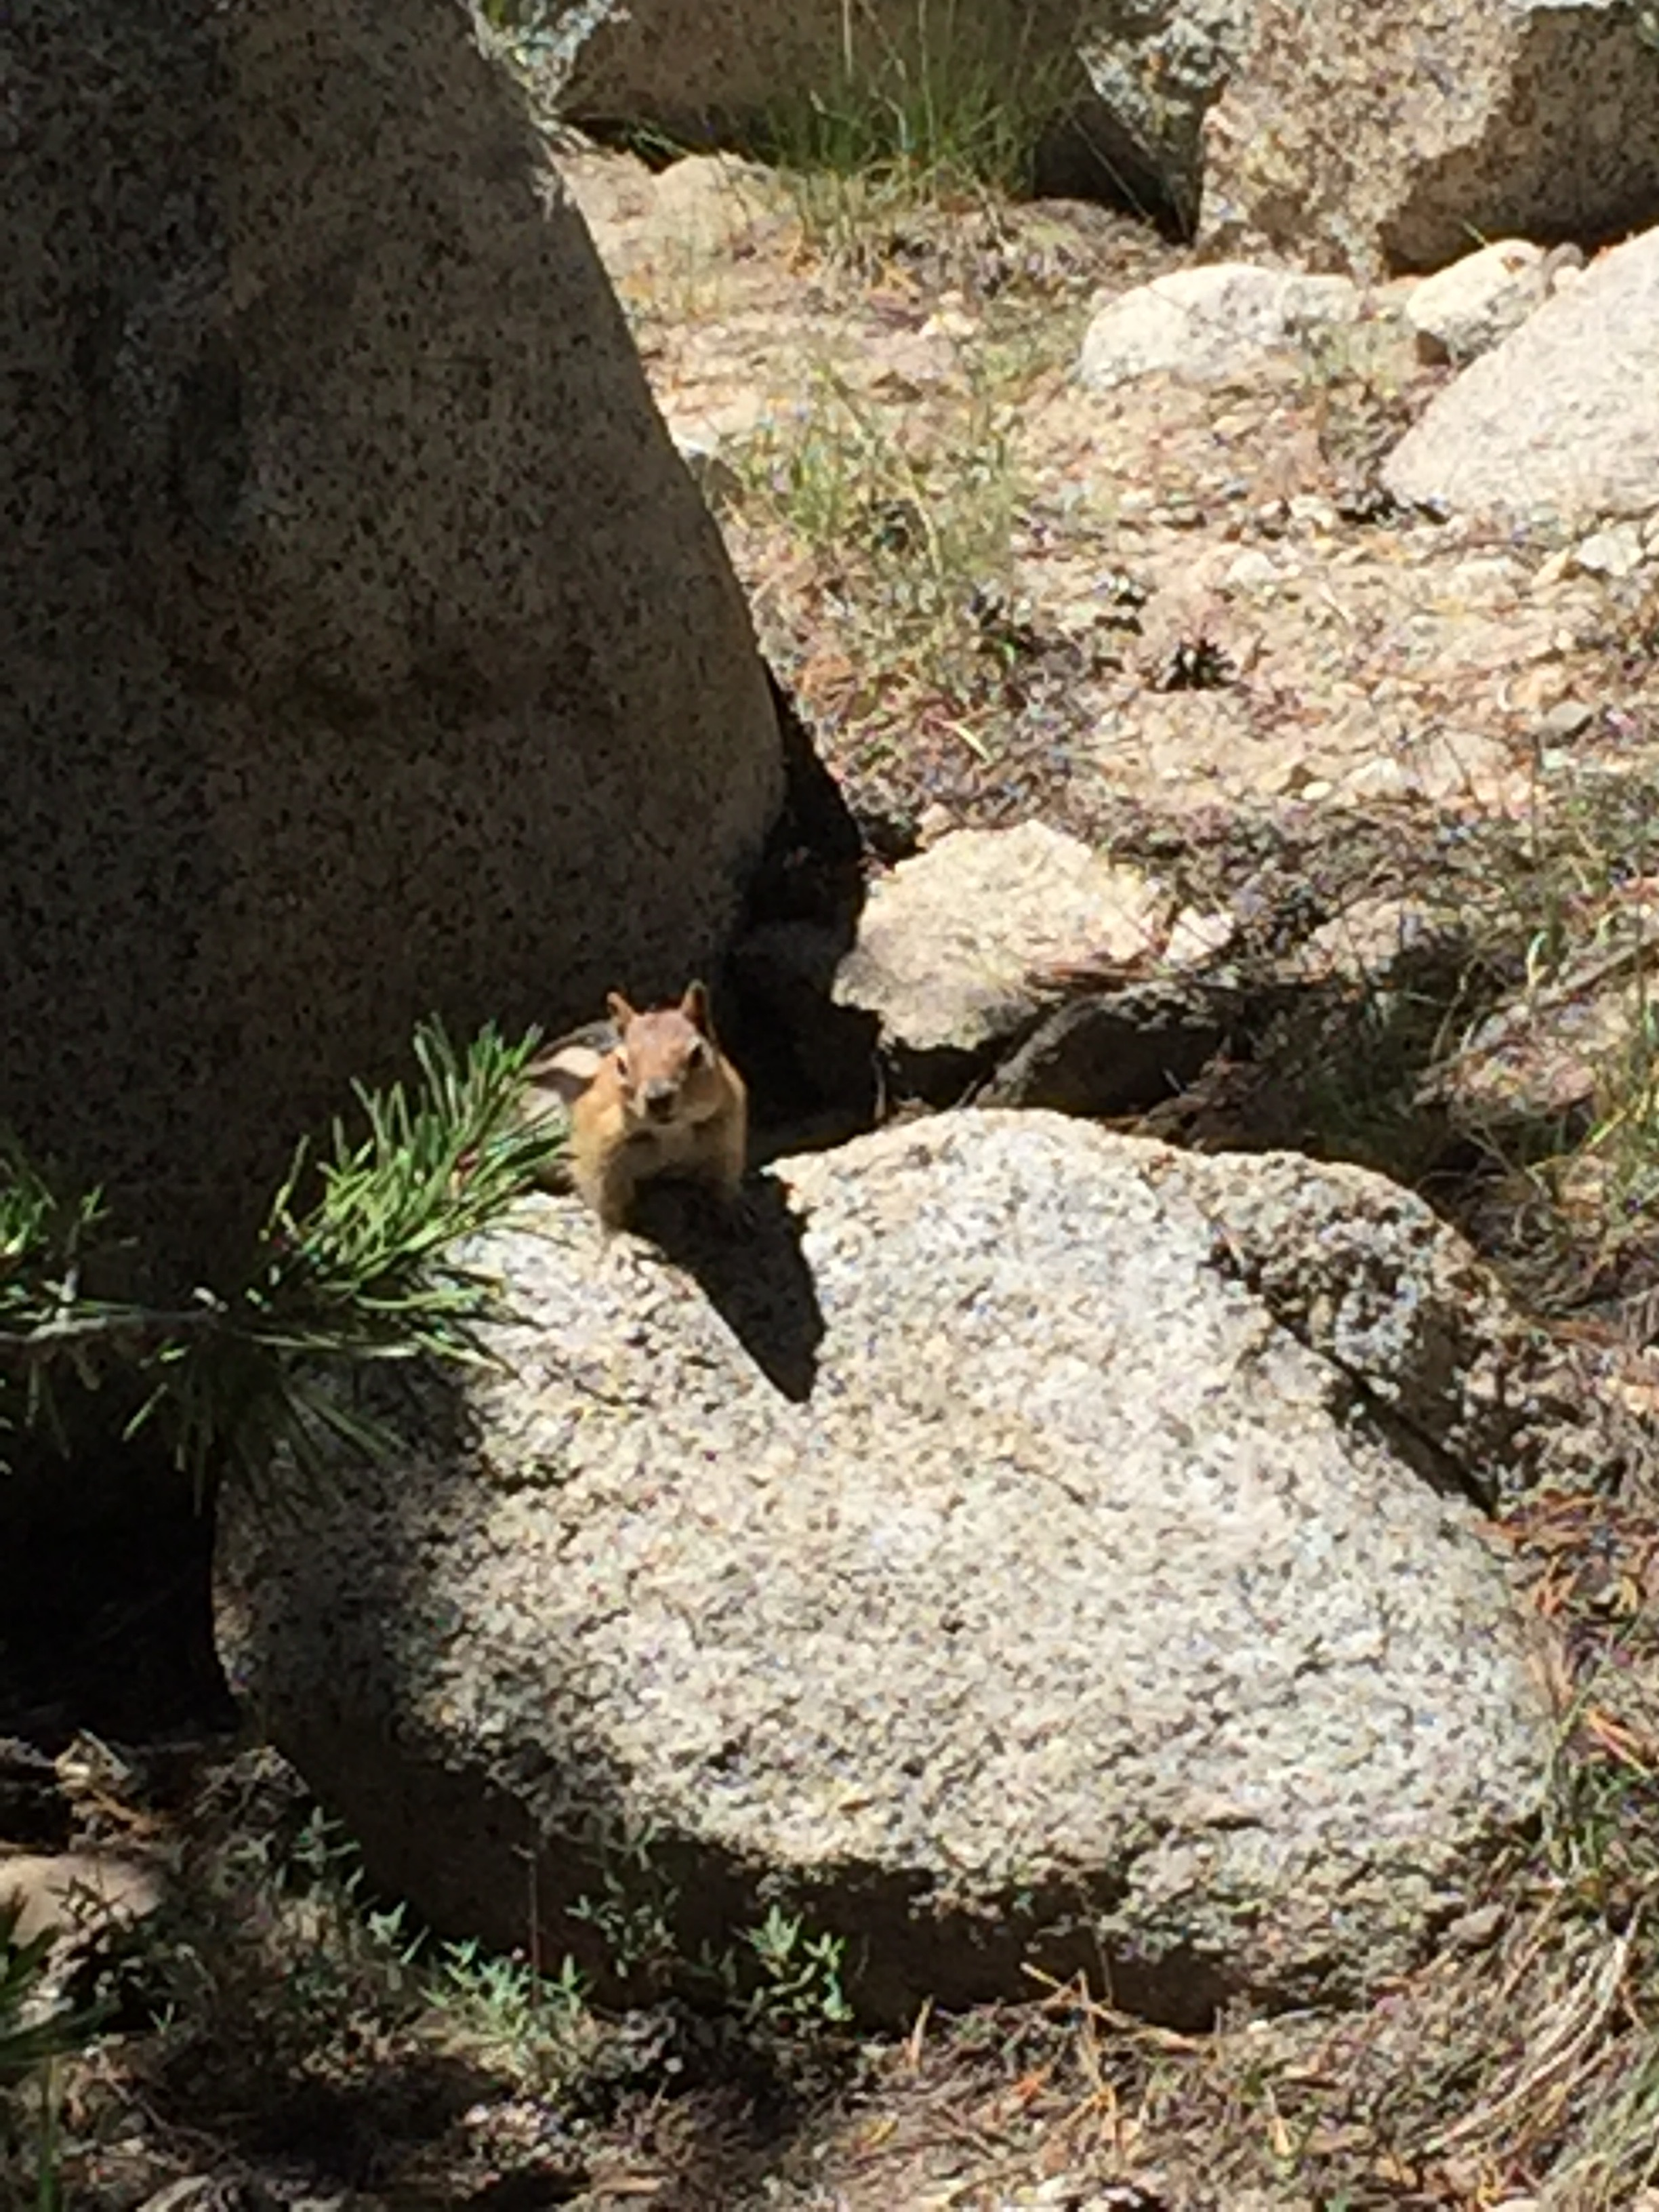 Chipmunk! We don't have these in the Bay Area so they're fun to see. But I imagine that for some people, the last thing in the world they want to see is a chipmunk! Kind of how I feel about seeing deer in Yosemite - all the other tourists gushing - and me just making a sour face!